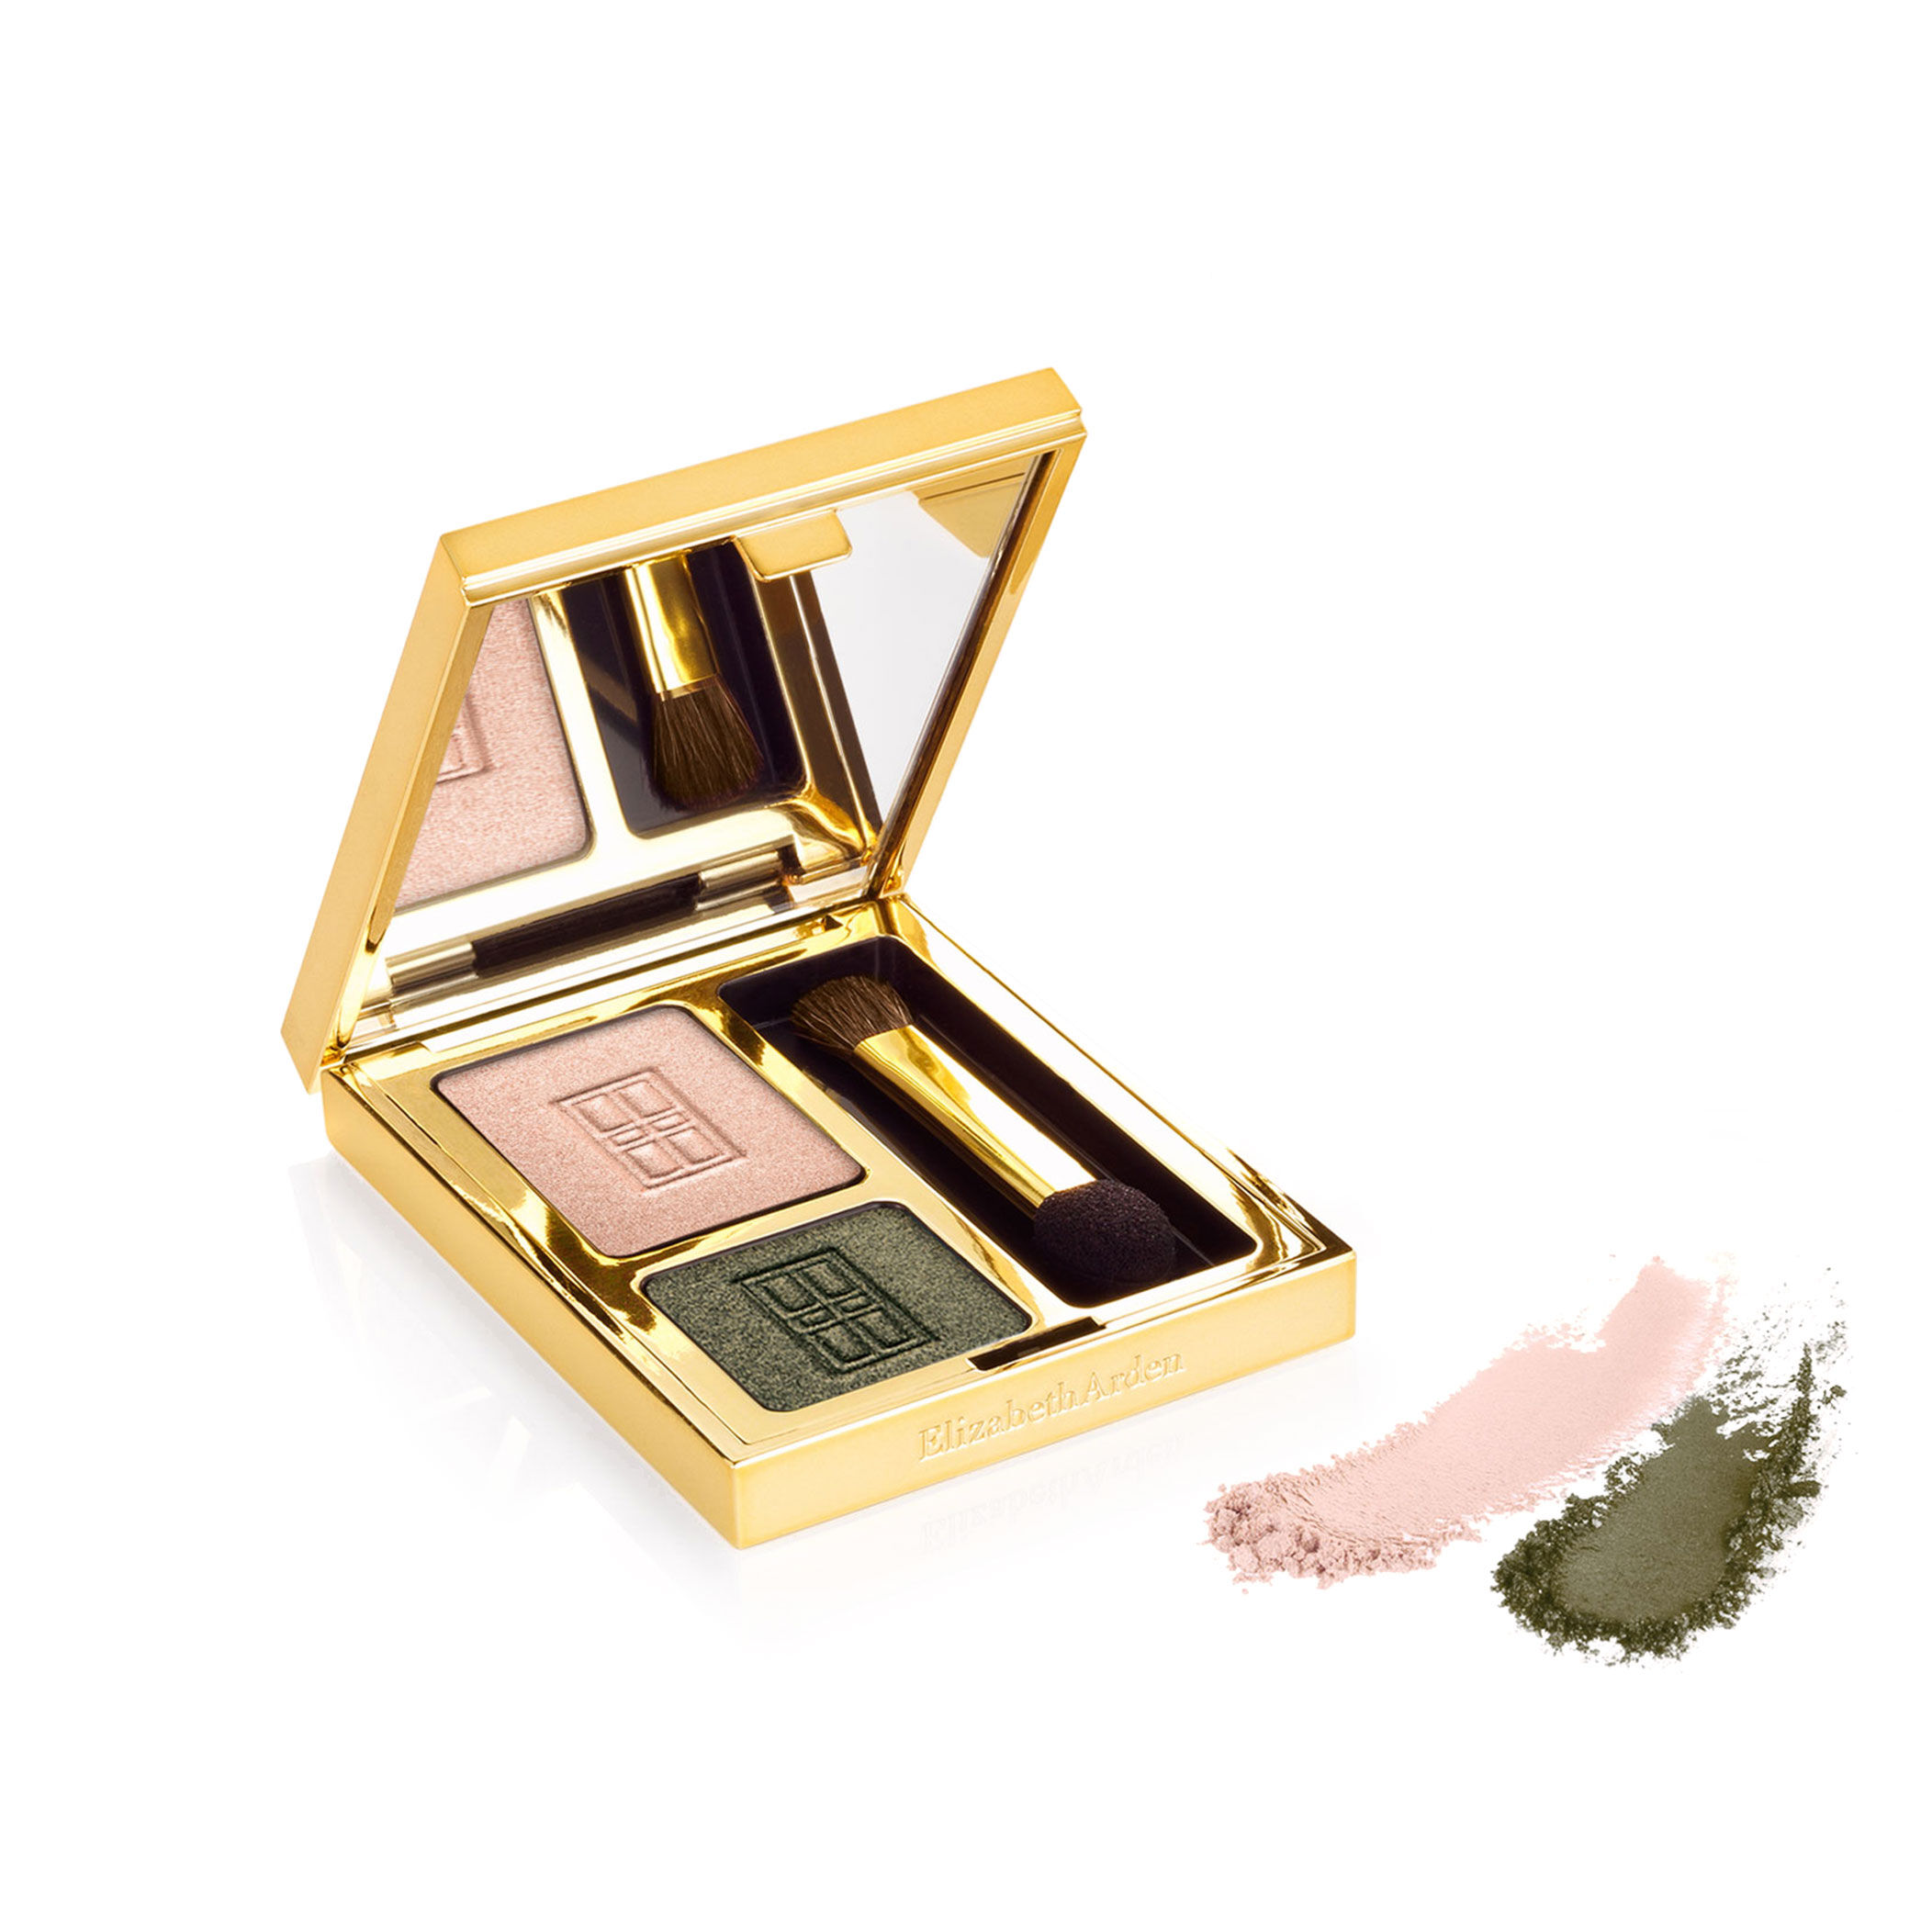 Instantly smooths and brightens the look of eyes while delivering luxurious skincare benefits.